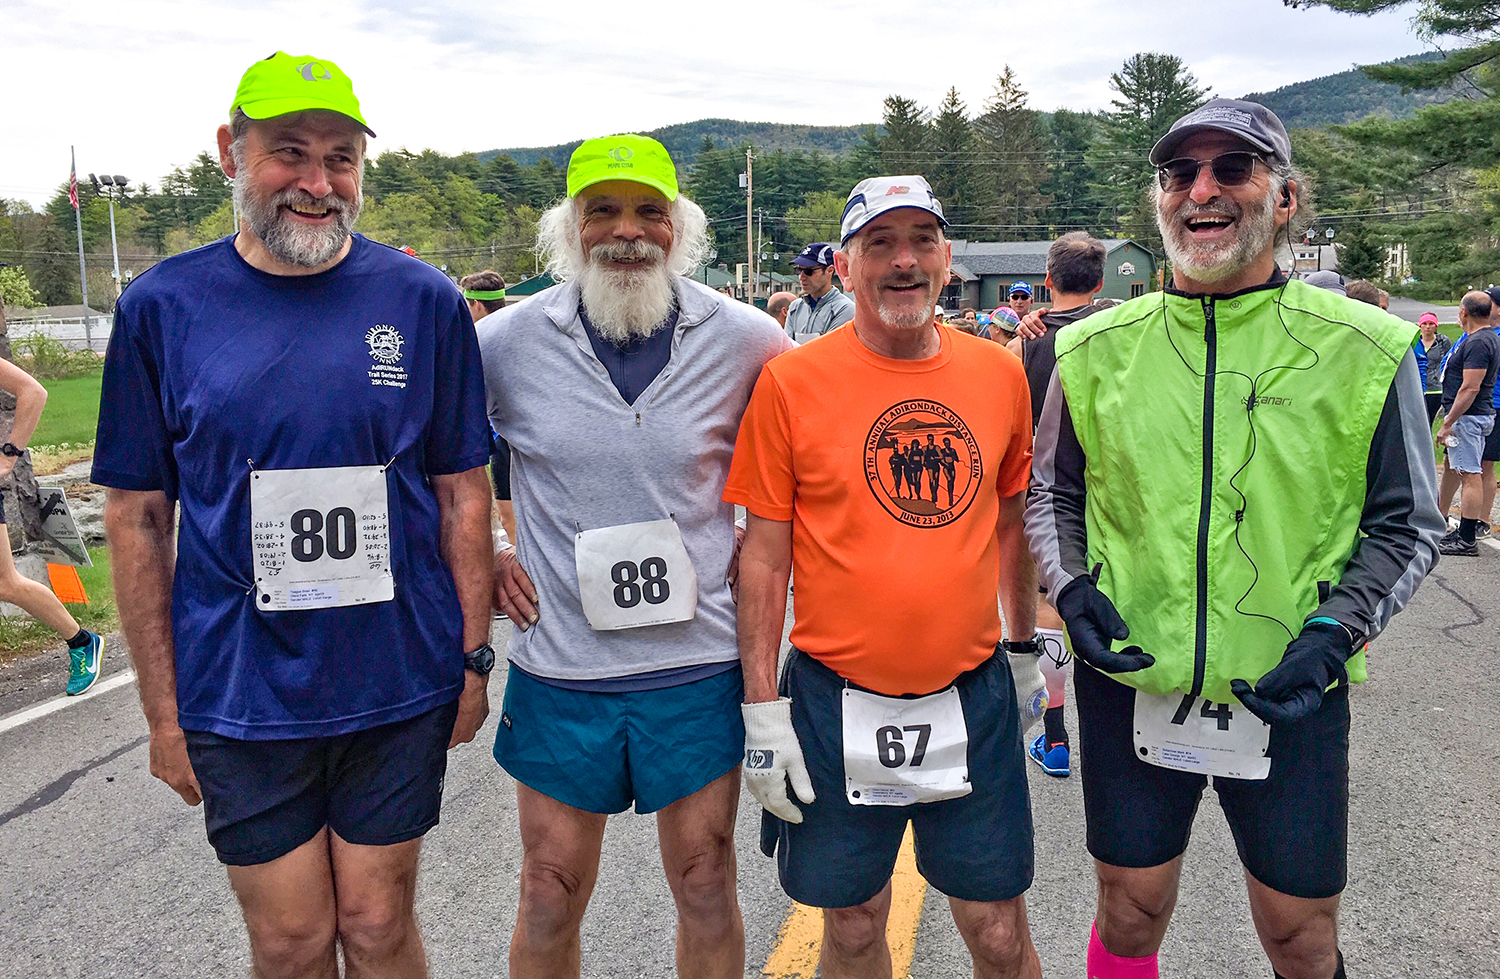 Brian Teague, Larry Mancini and Dan Olden have ran all 29 races, and Mark Schachner has done 26.  Jill Pederson